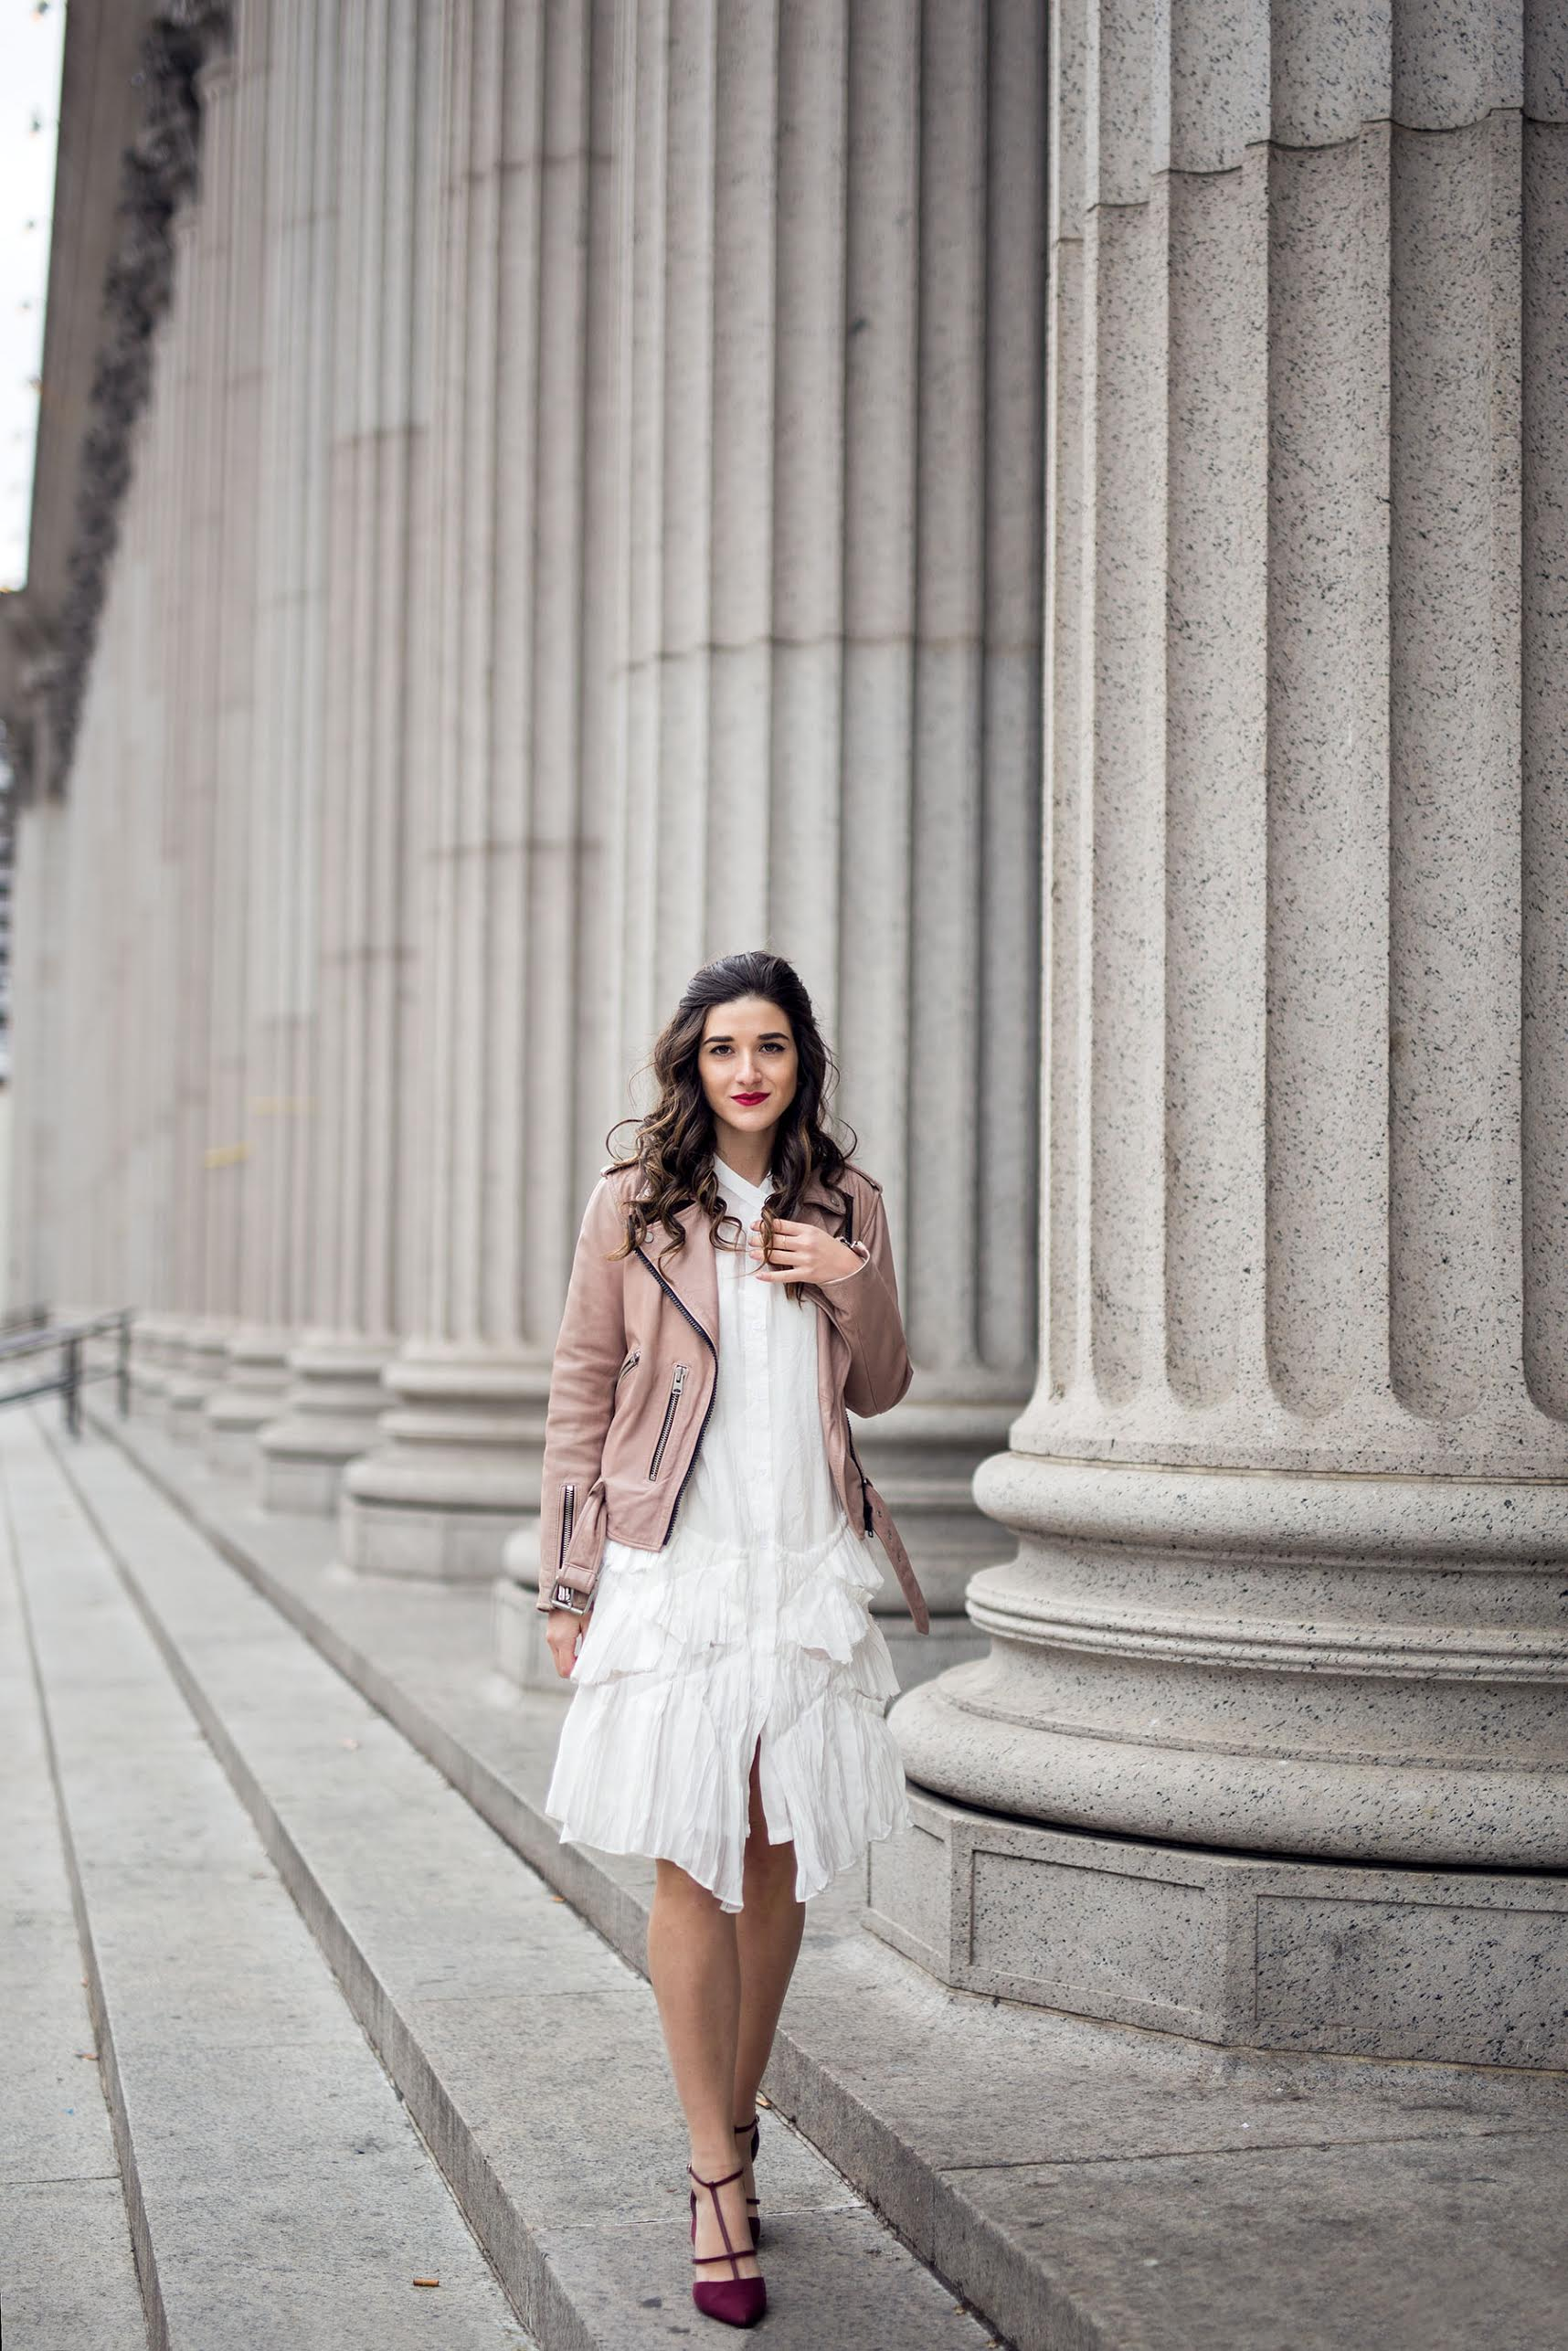 34f62c3c64e38 White Ruffle Dress Luvit Louboutins & Love Fashion Blog Esther Santer NYC  Street Style Blogger Outfit